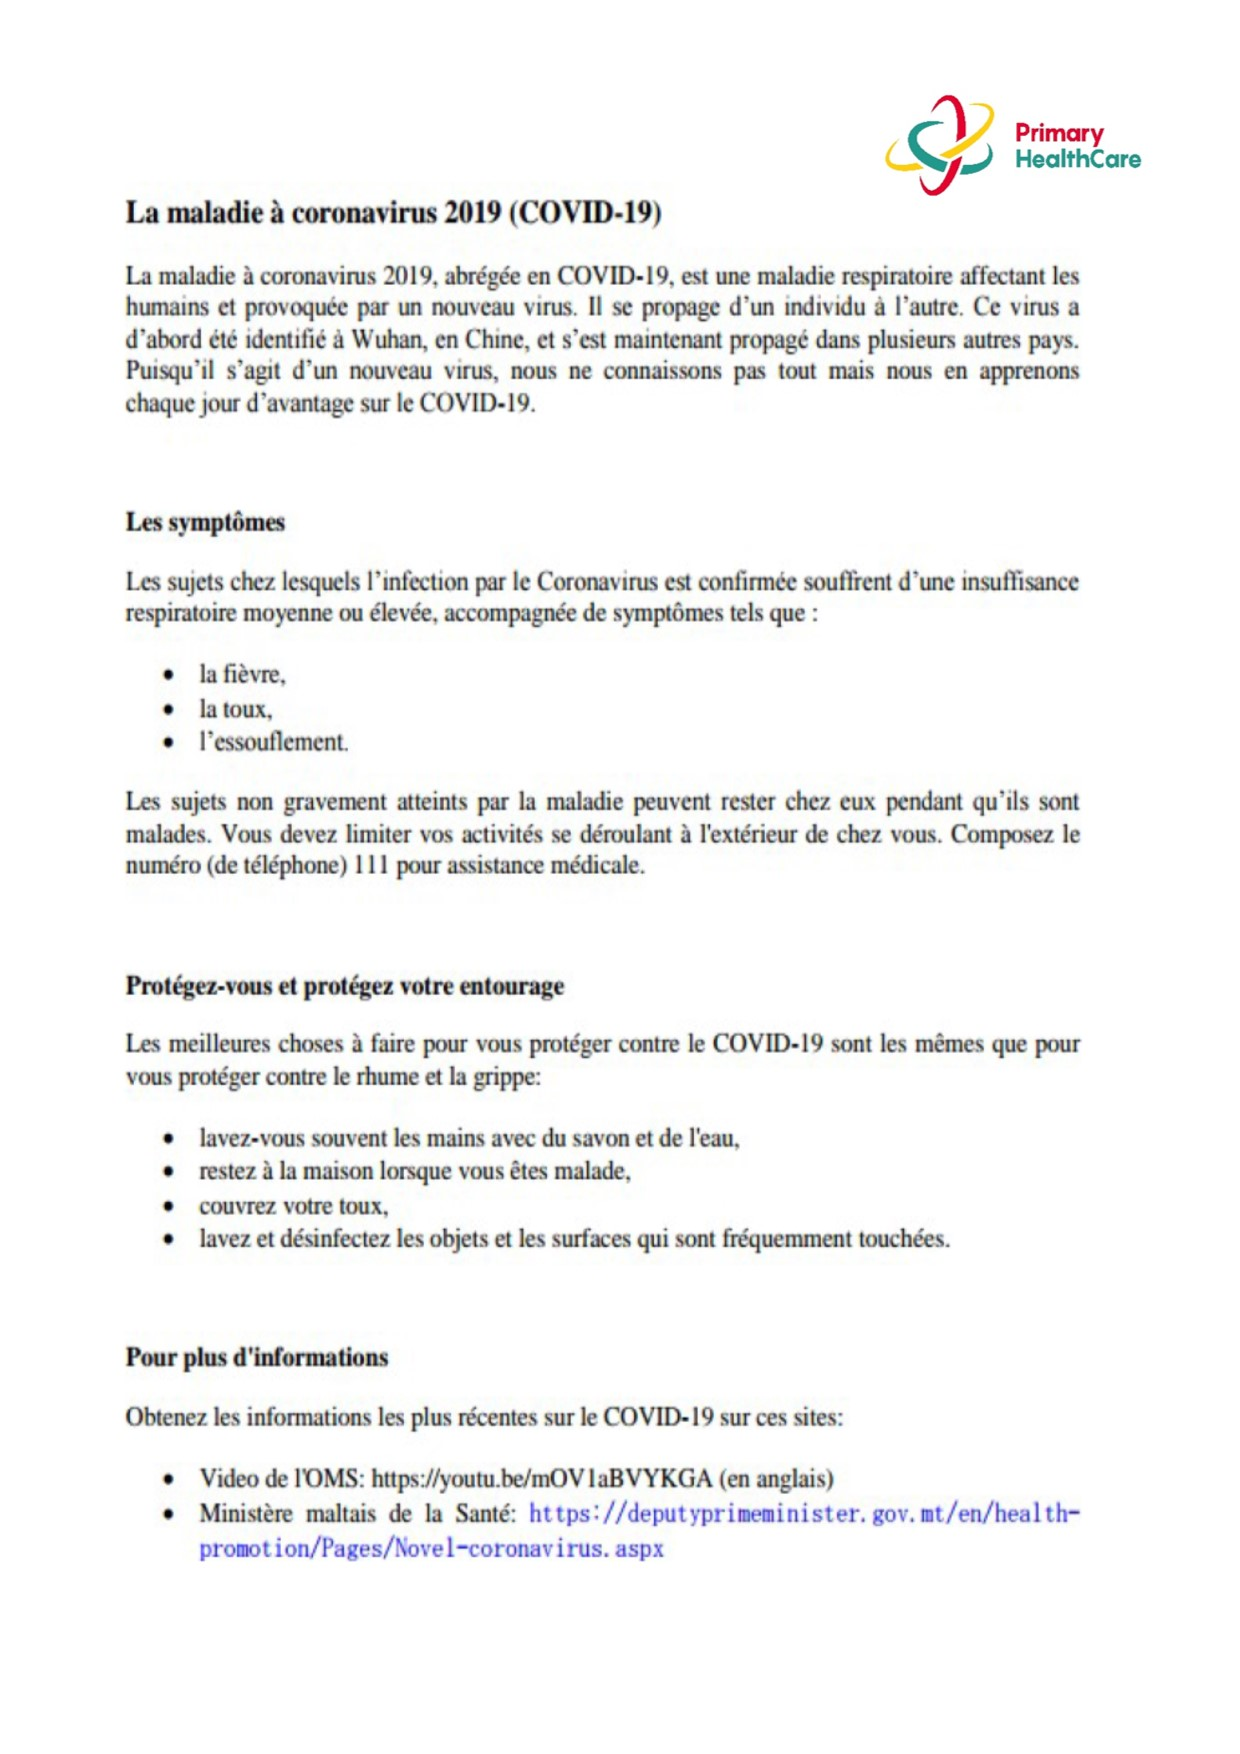 Info Leaflet_French.jpg